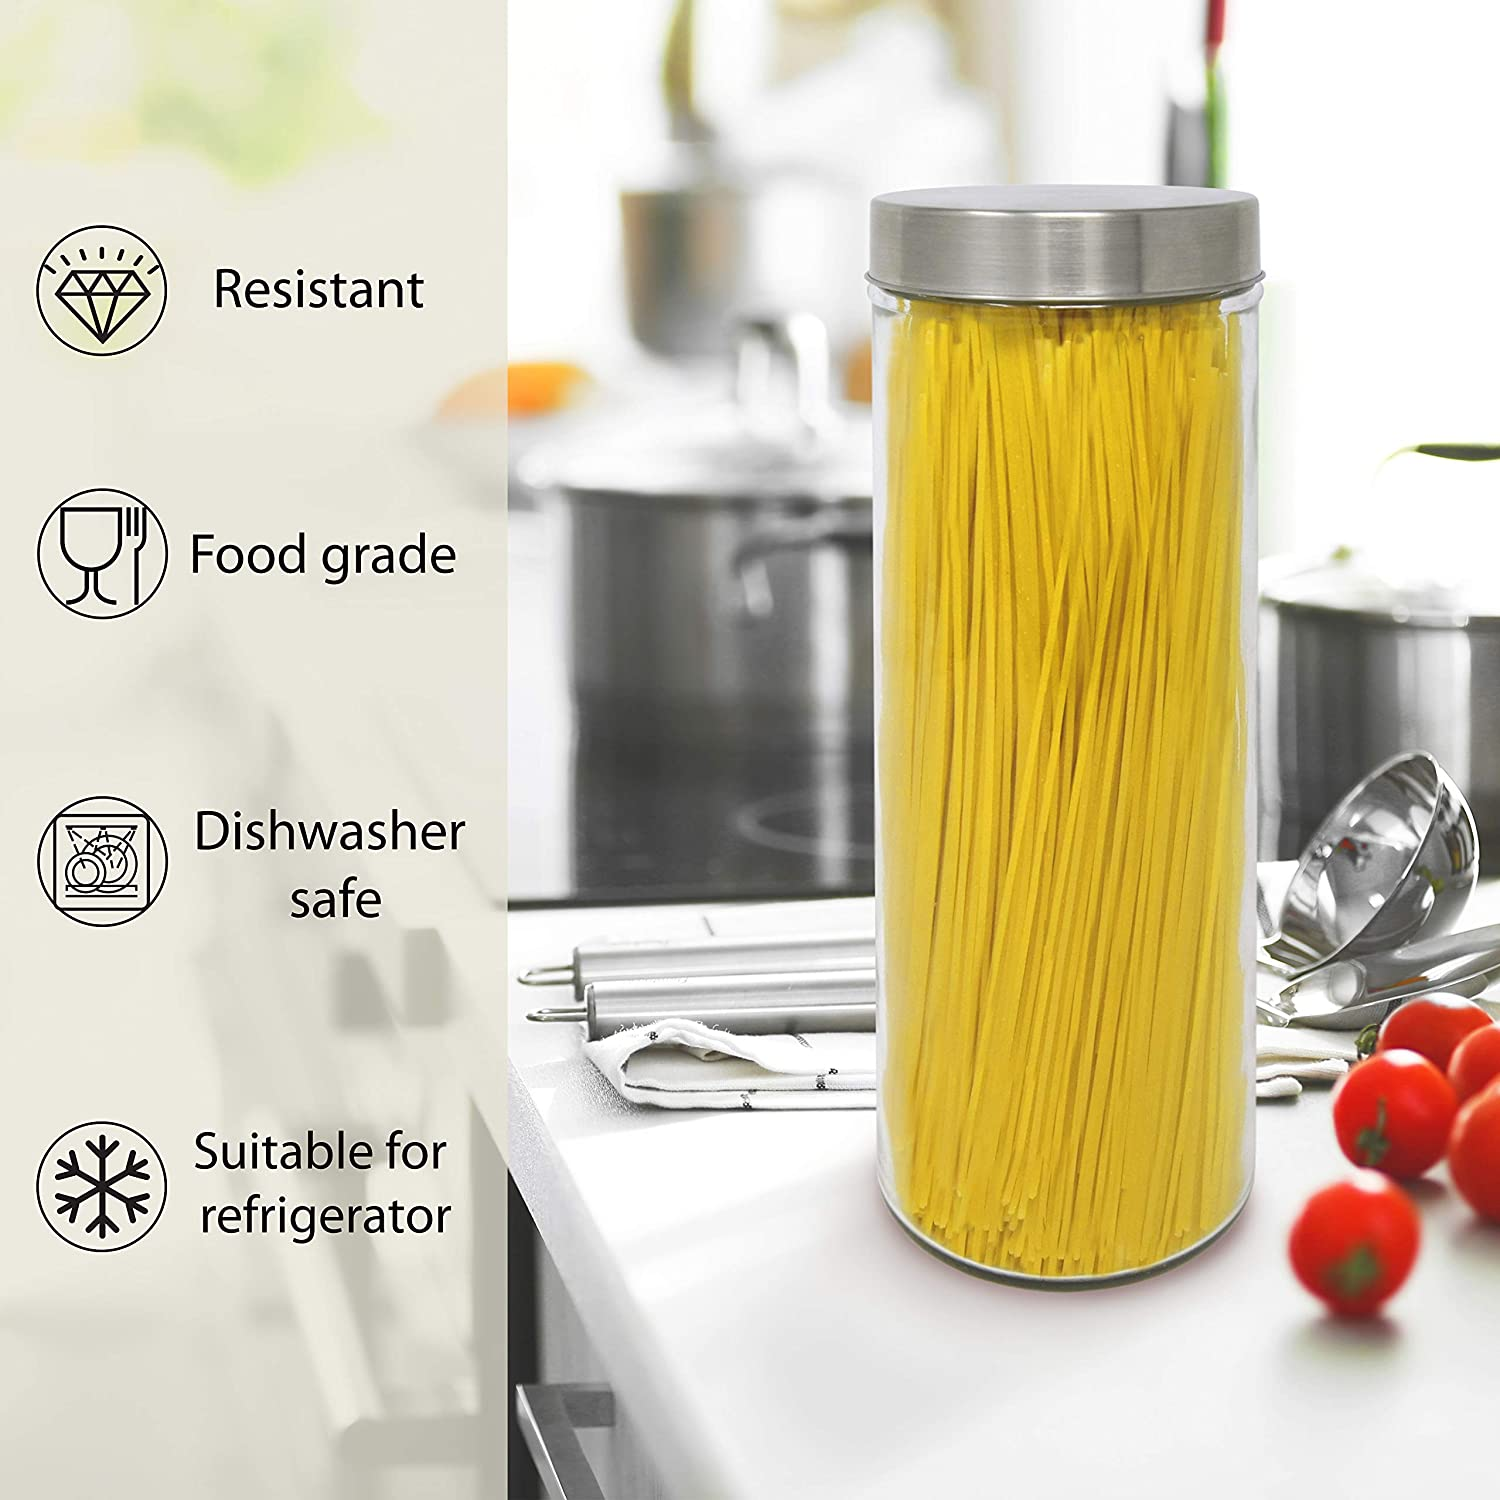 31x10 cm Inox-kristal Pack 2 Glass Jars Storage Canister for Food. 1.77 L with Stainless Steel Screw Cap